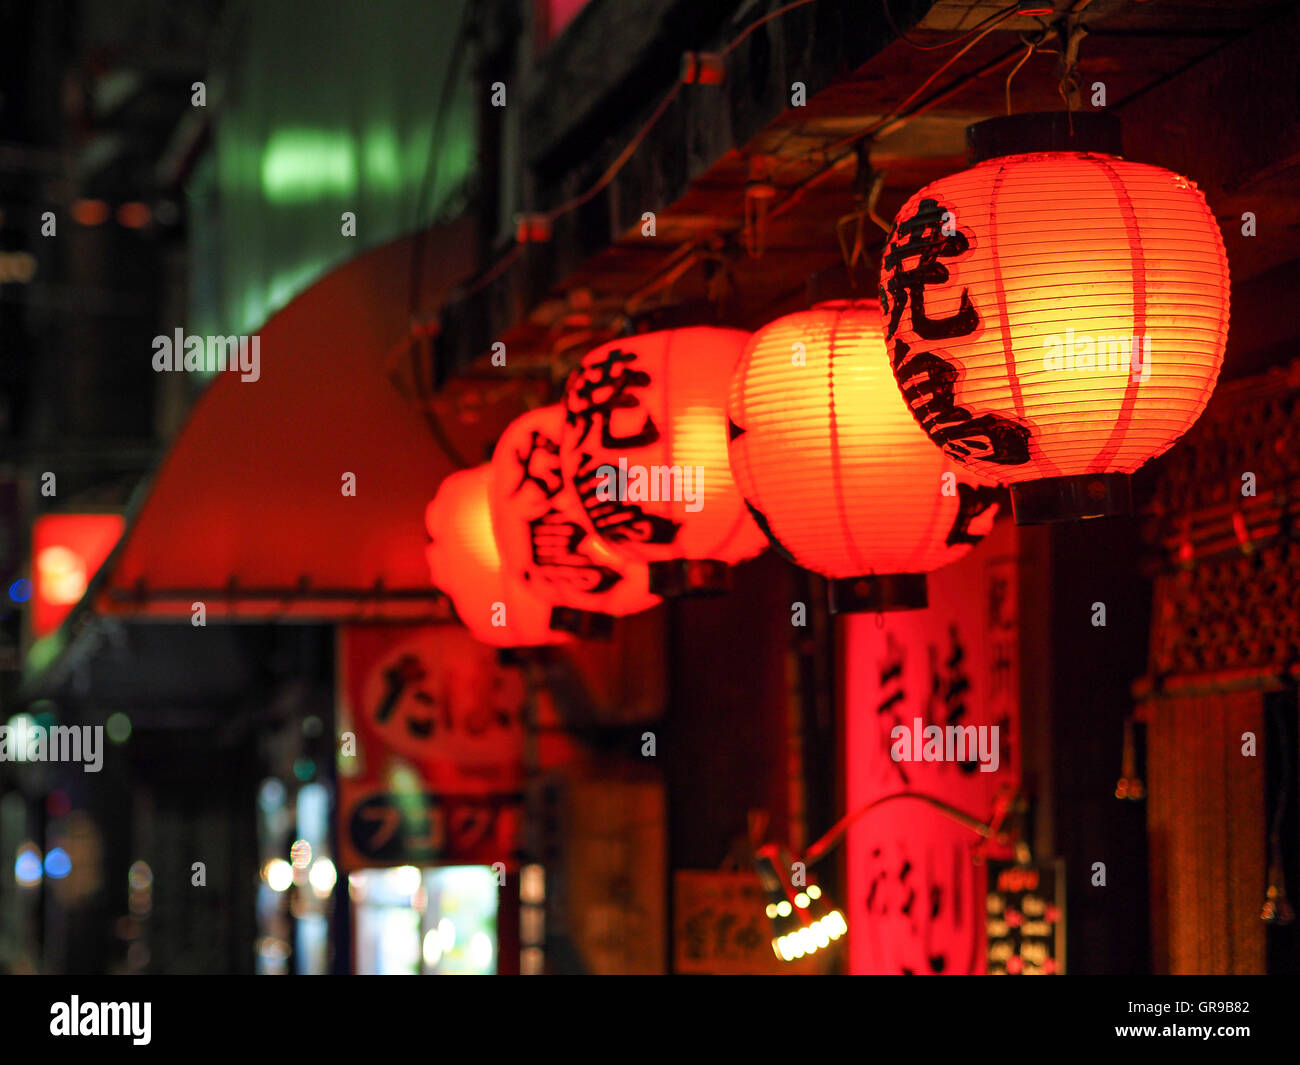 Red Illuminated Chinese Lanterns Hanging Outside Shop At Night - Stock Image